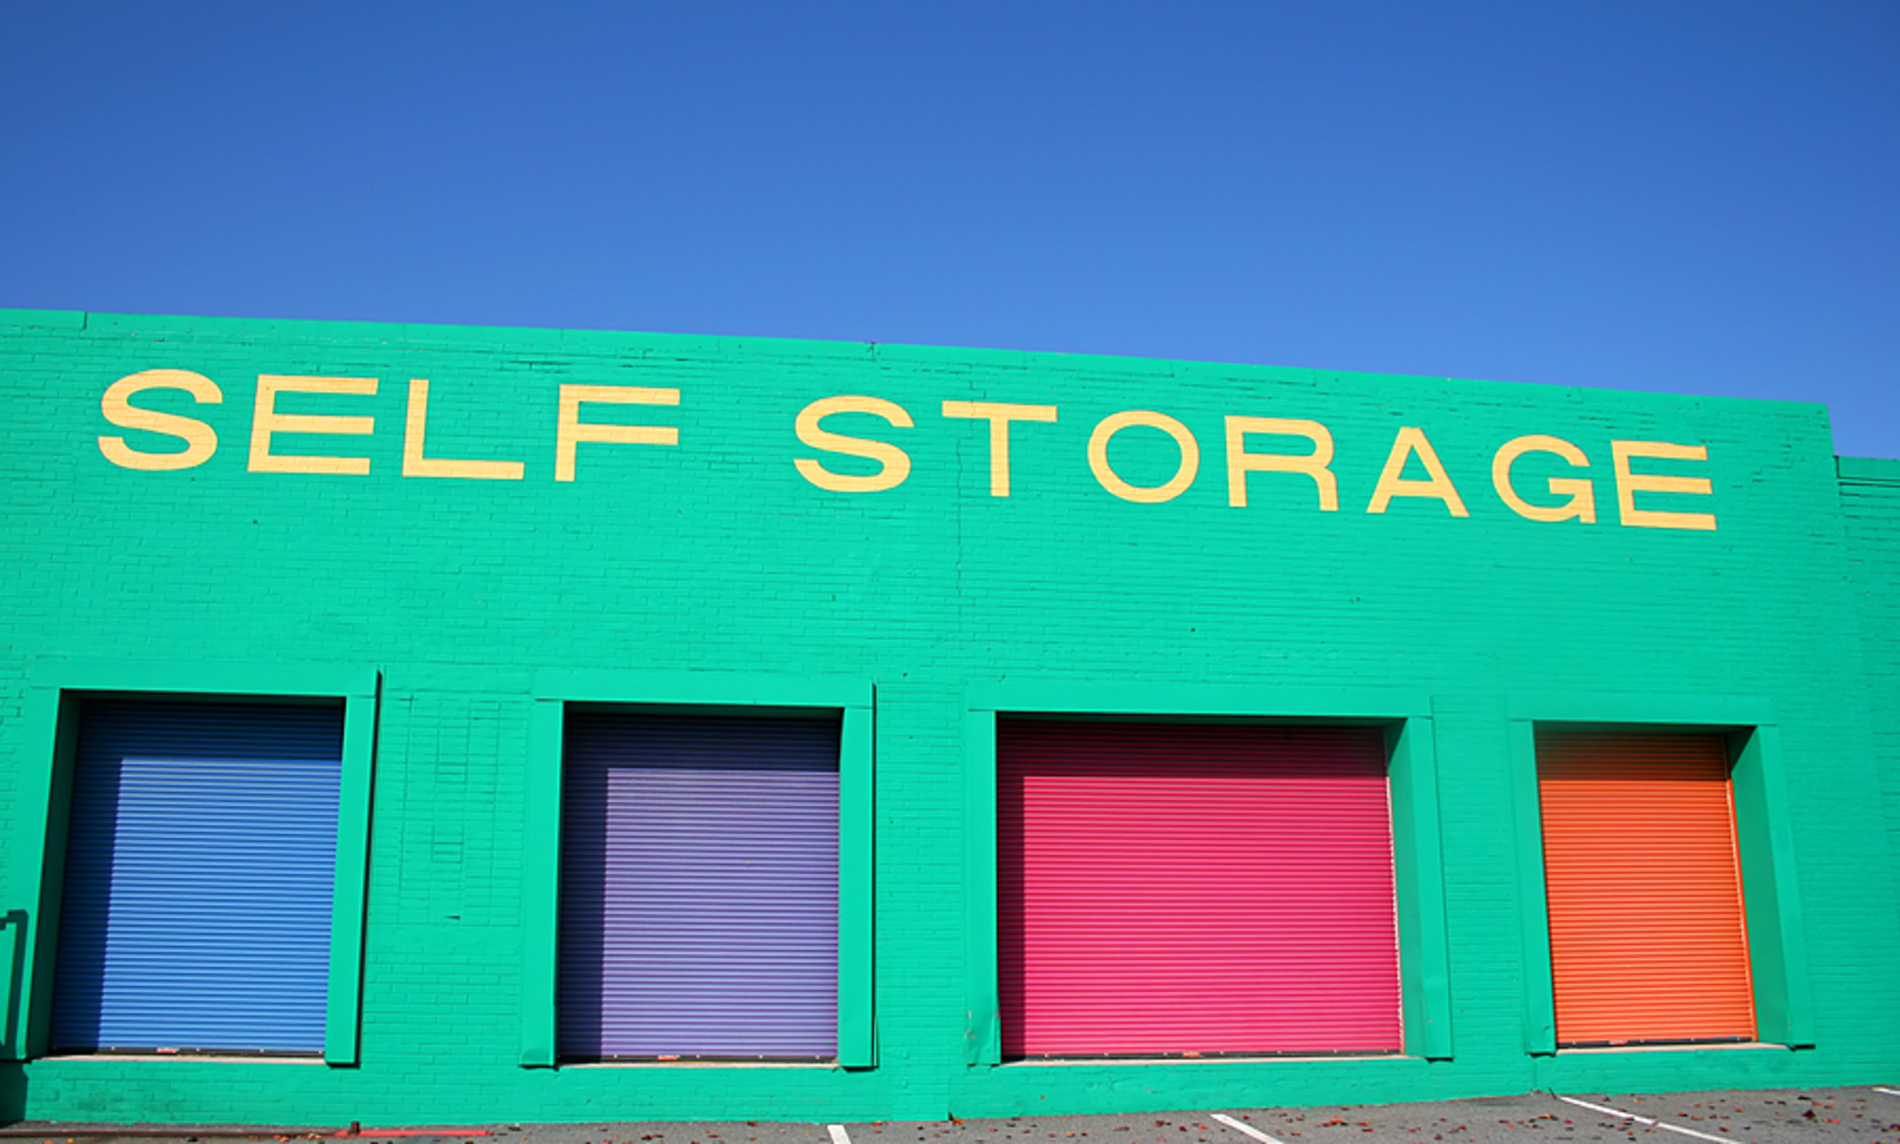 Self storage building with colored doors.